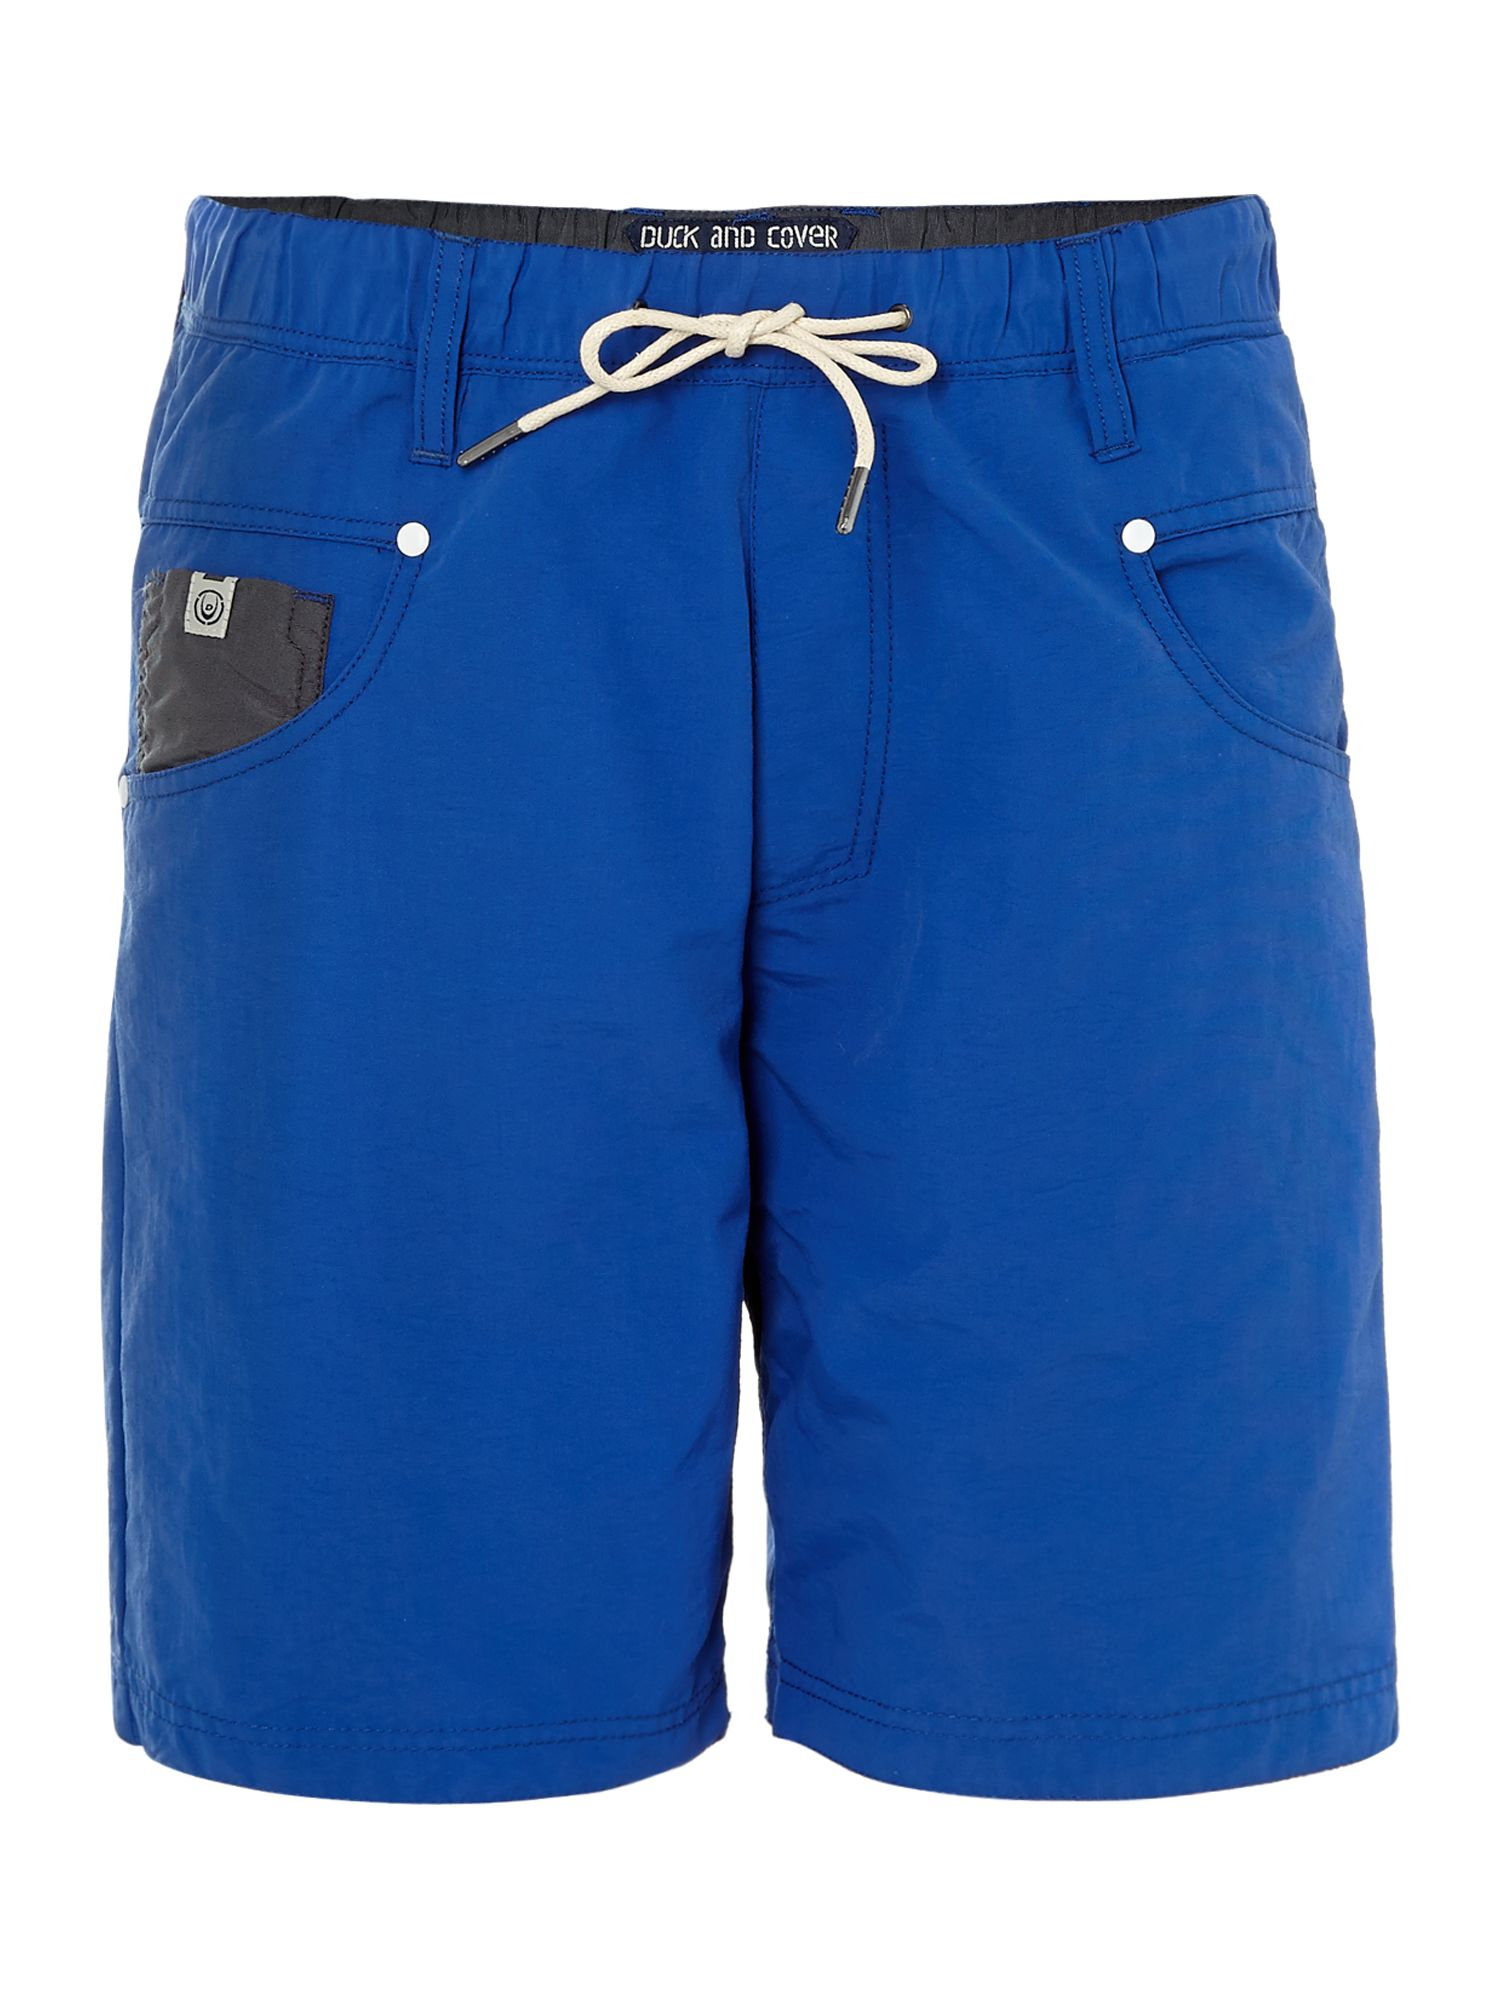 Plean swim shorts in nylon